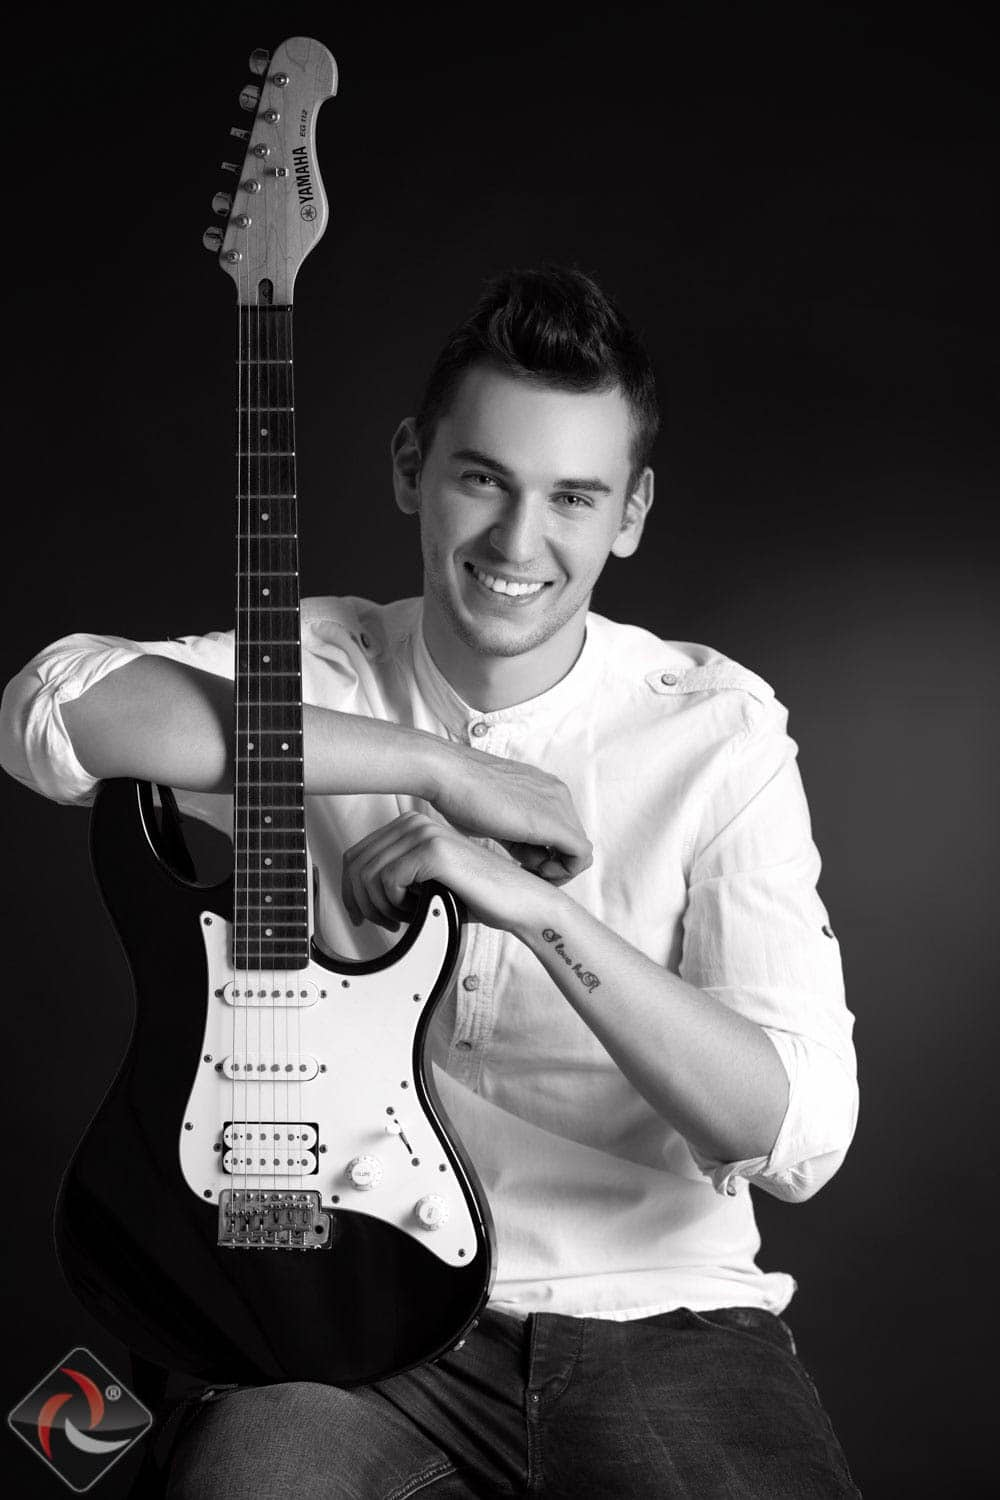 Guitarist - Modeling Photoshoot